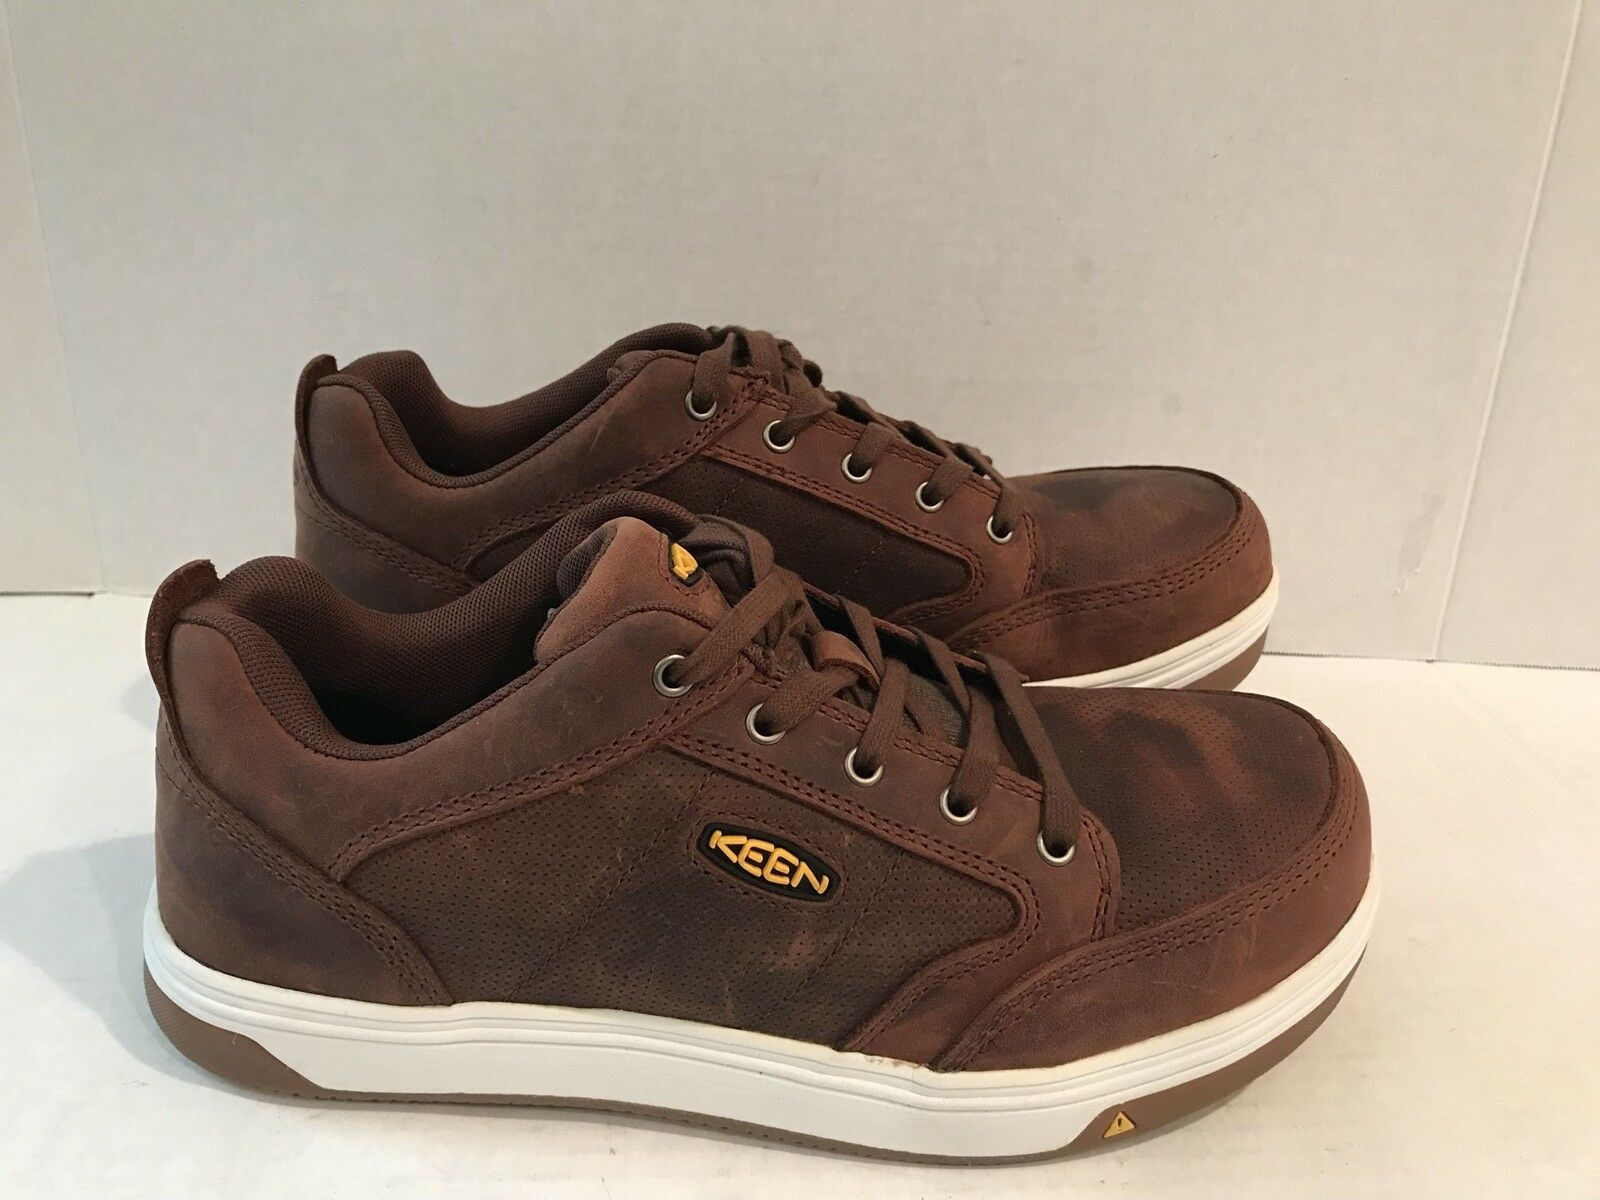 KEEN UTILITY MEN'S LOW SHOES COLOR BROWN SUEDE SIZE 9 NEW SAMPLE